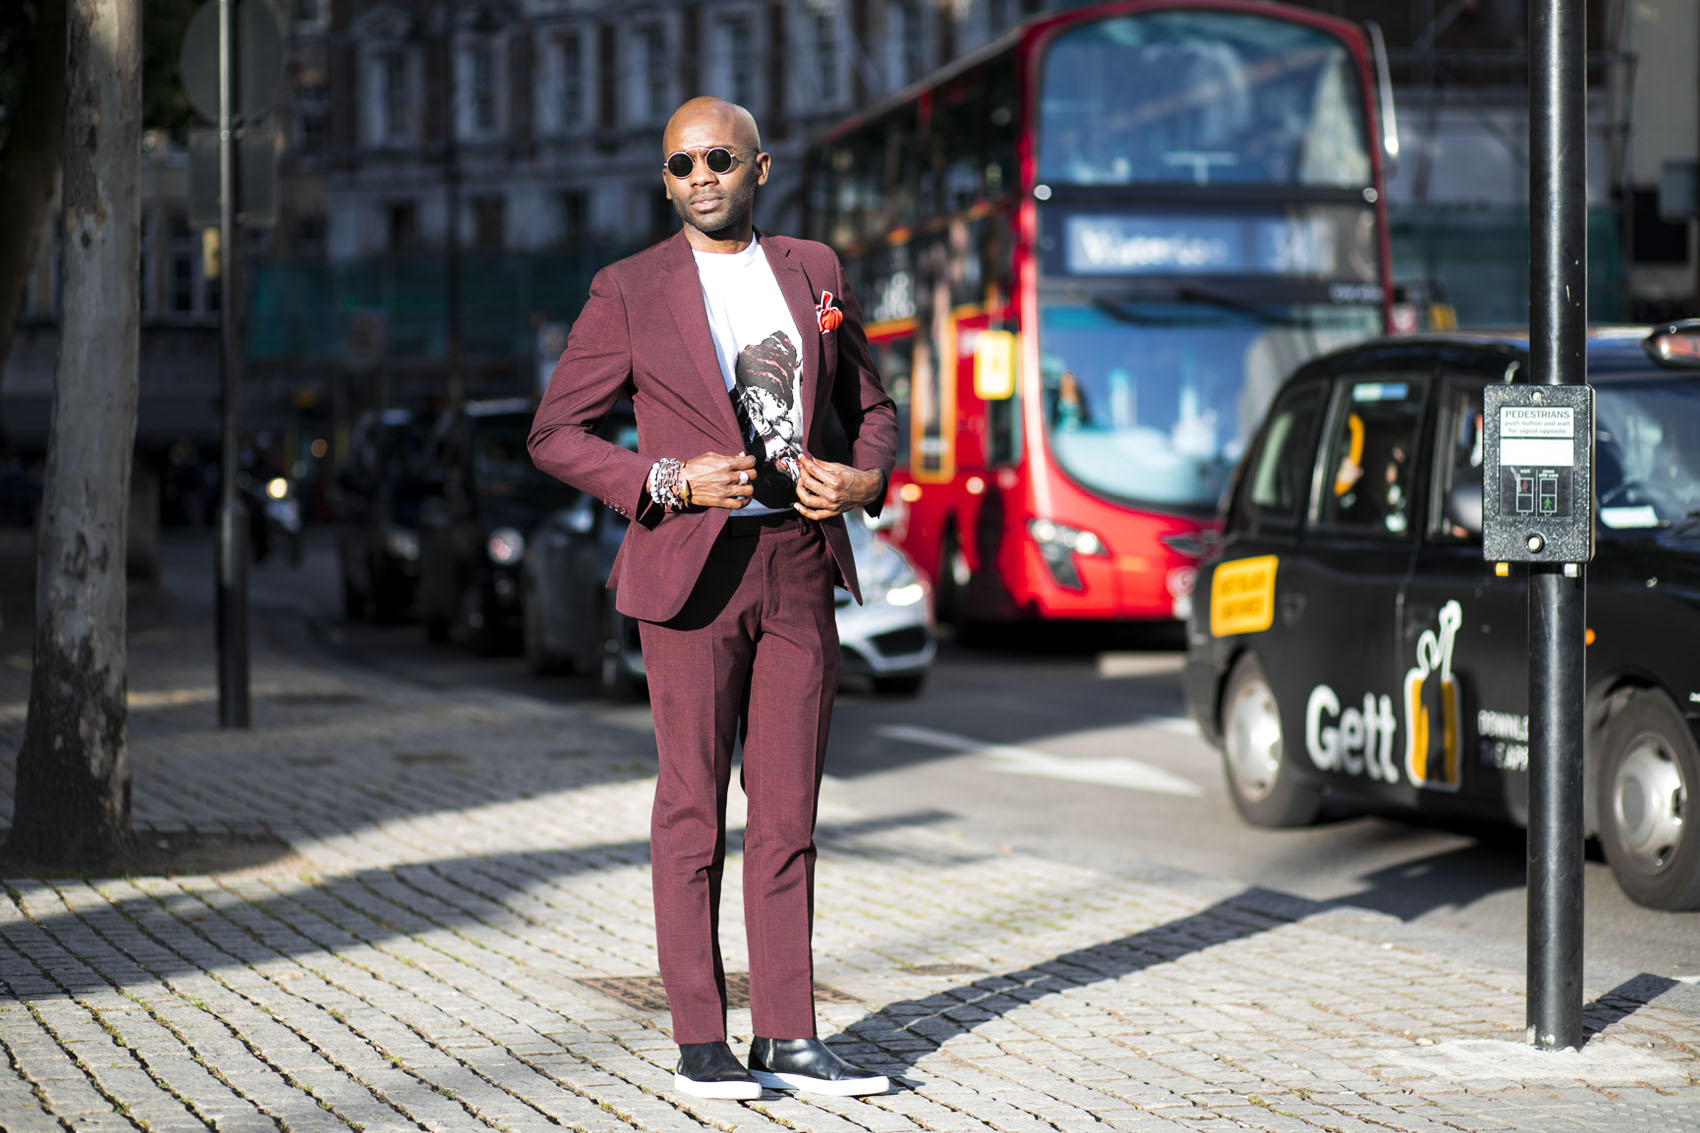 Geoff K. Cooper (Street Style Look) photographed by Marco Vazque